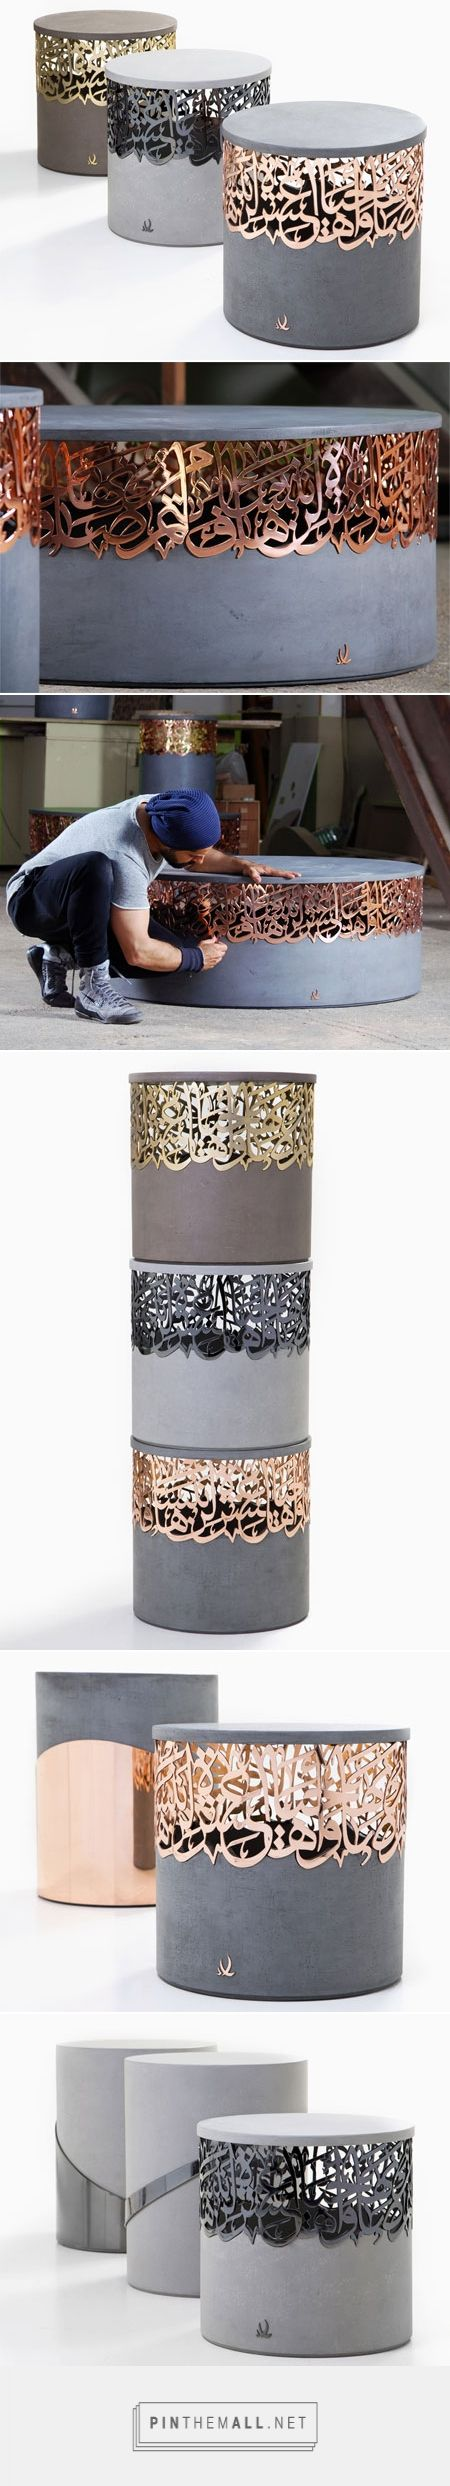 Metal and concrete stools that integrate Arabic calligraphy - created via…